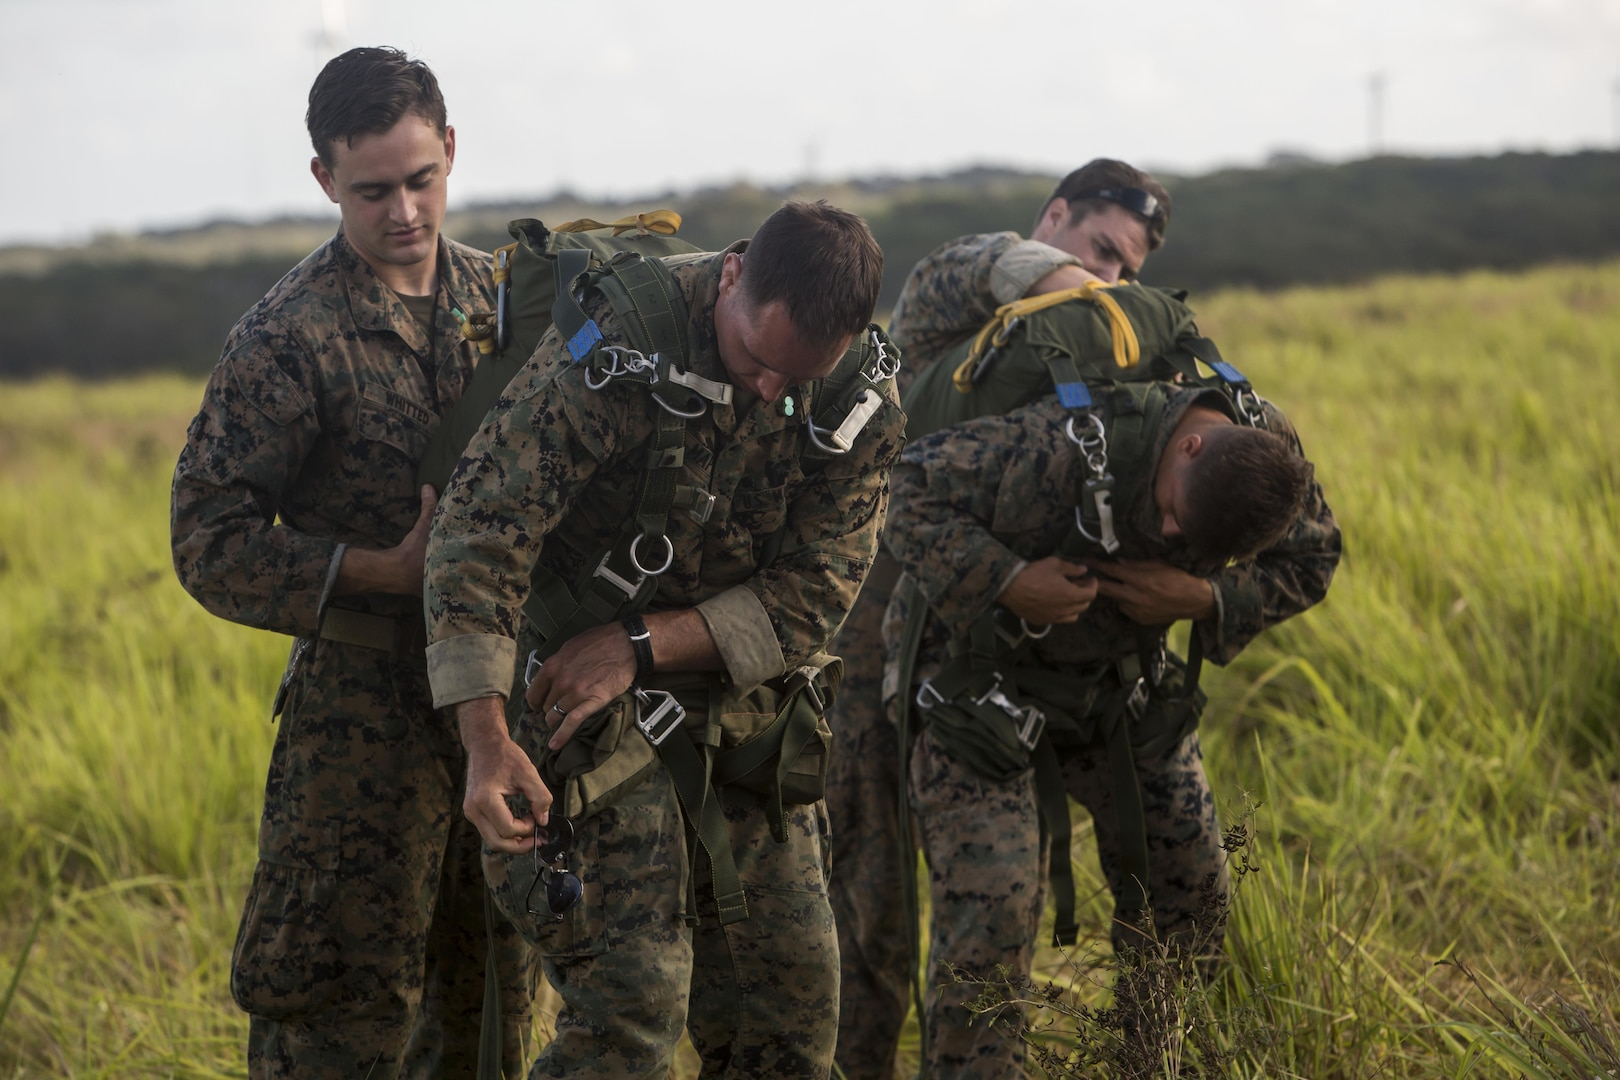 SCHOFIELD BARRACKS – Marines with 4th Force Reconnaissance Company prepare their parachutes before conducting a static line jump at Schofield Barracks, July 14, 2017. The Marines trained with U.S. Army Special Forces to maintain proficiency in completing static line and high altitude free fall airborne jumps. (U.S. Marine Corps photo by Lance Cpl. Isabelo Tabanguil)